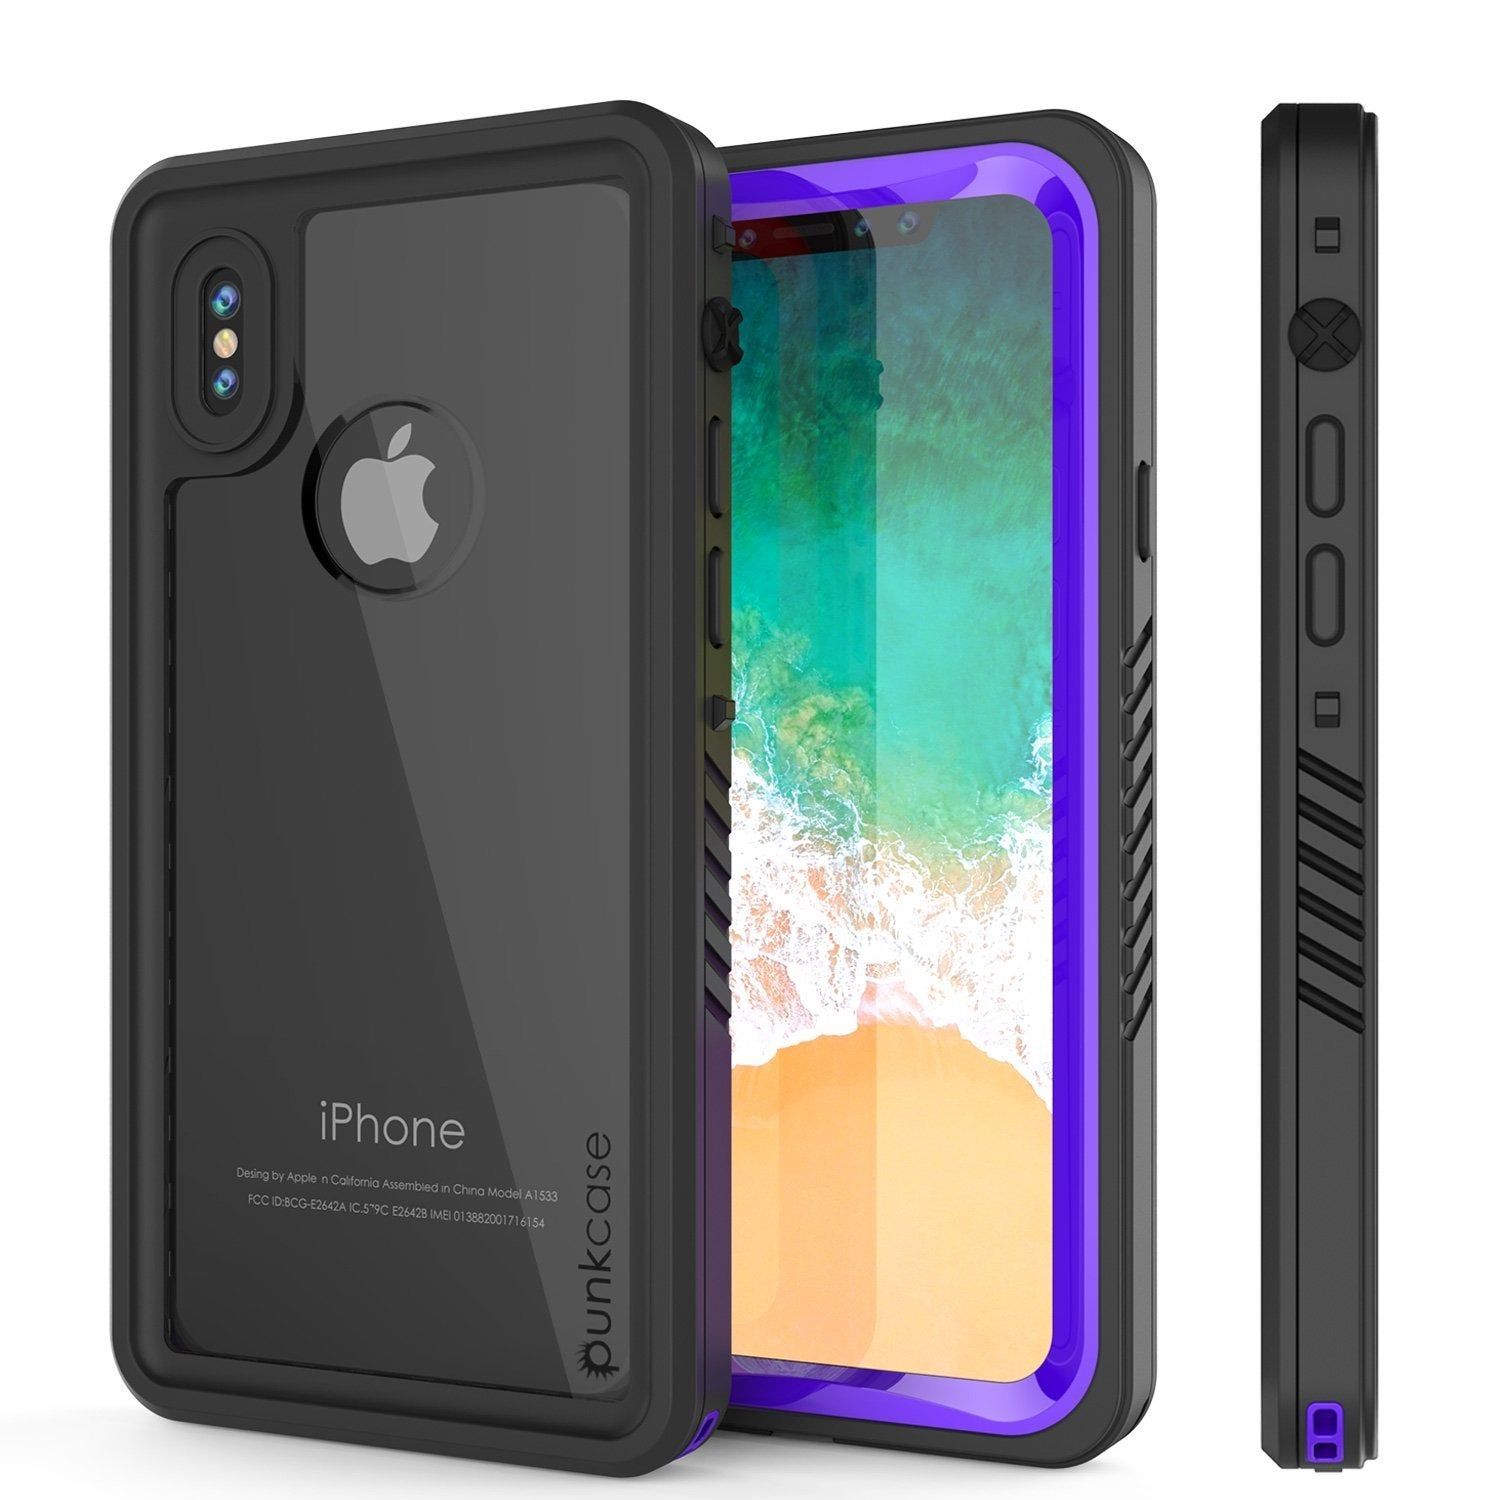 iPhone XS Max Waterproof Case, Punkcase [Extreme Series] Armor Cover W/ Built In Screen Protector [Purple]